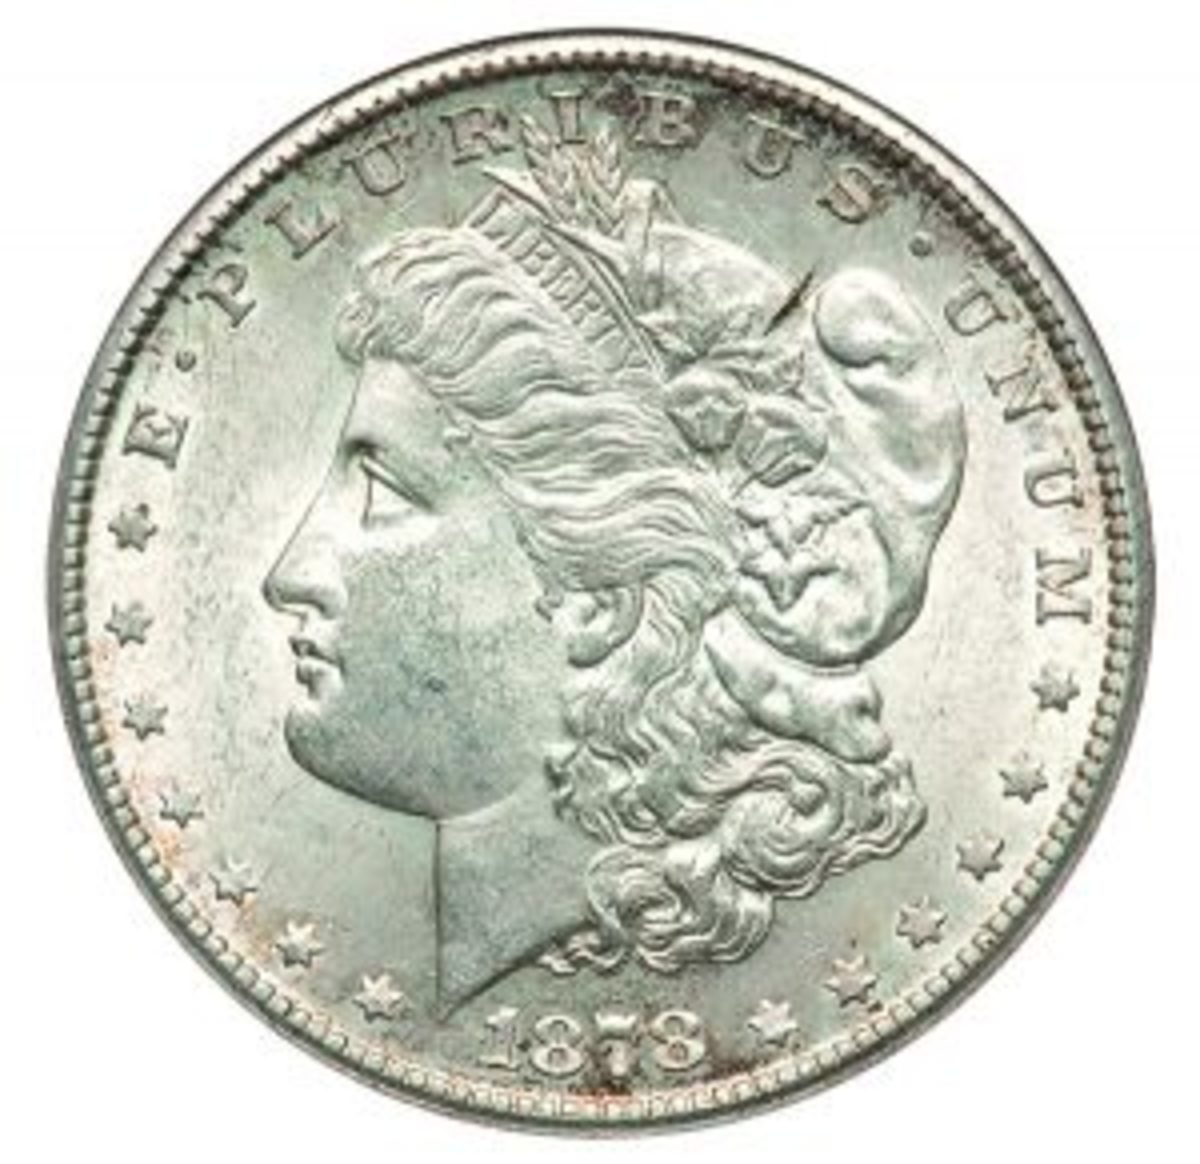 1878-S Morgan dollar (Image courtesy Heritage Auctions.)